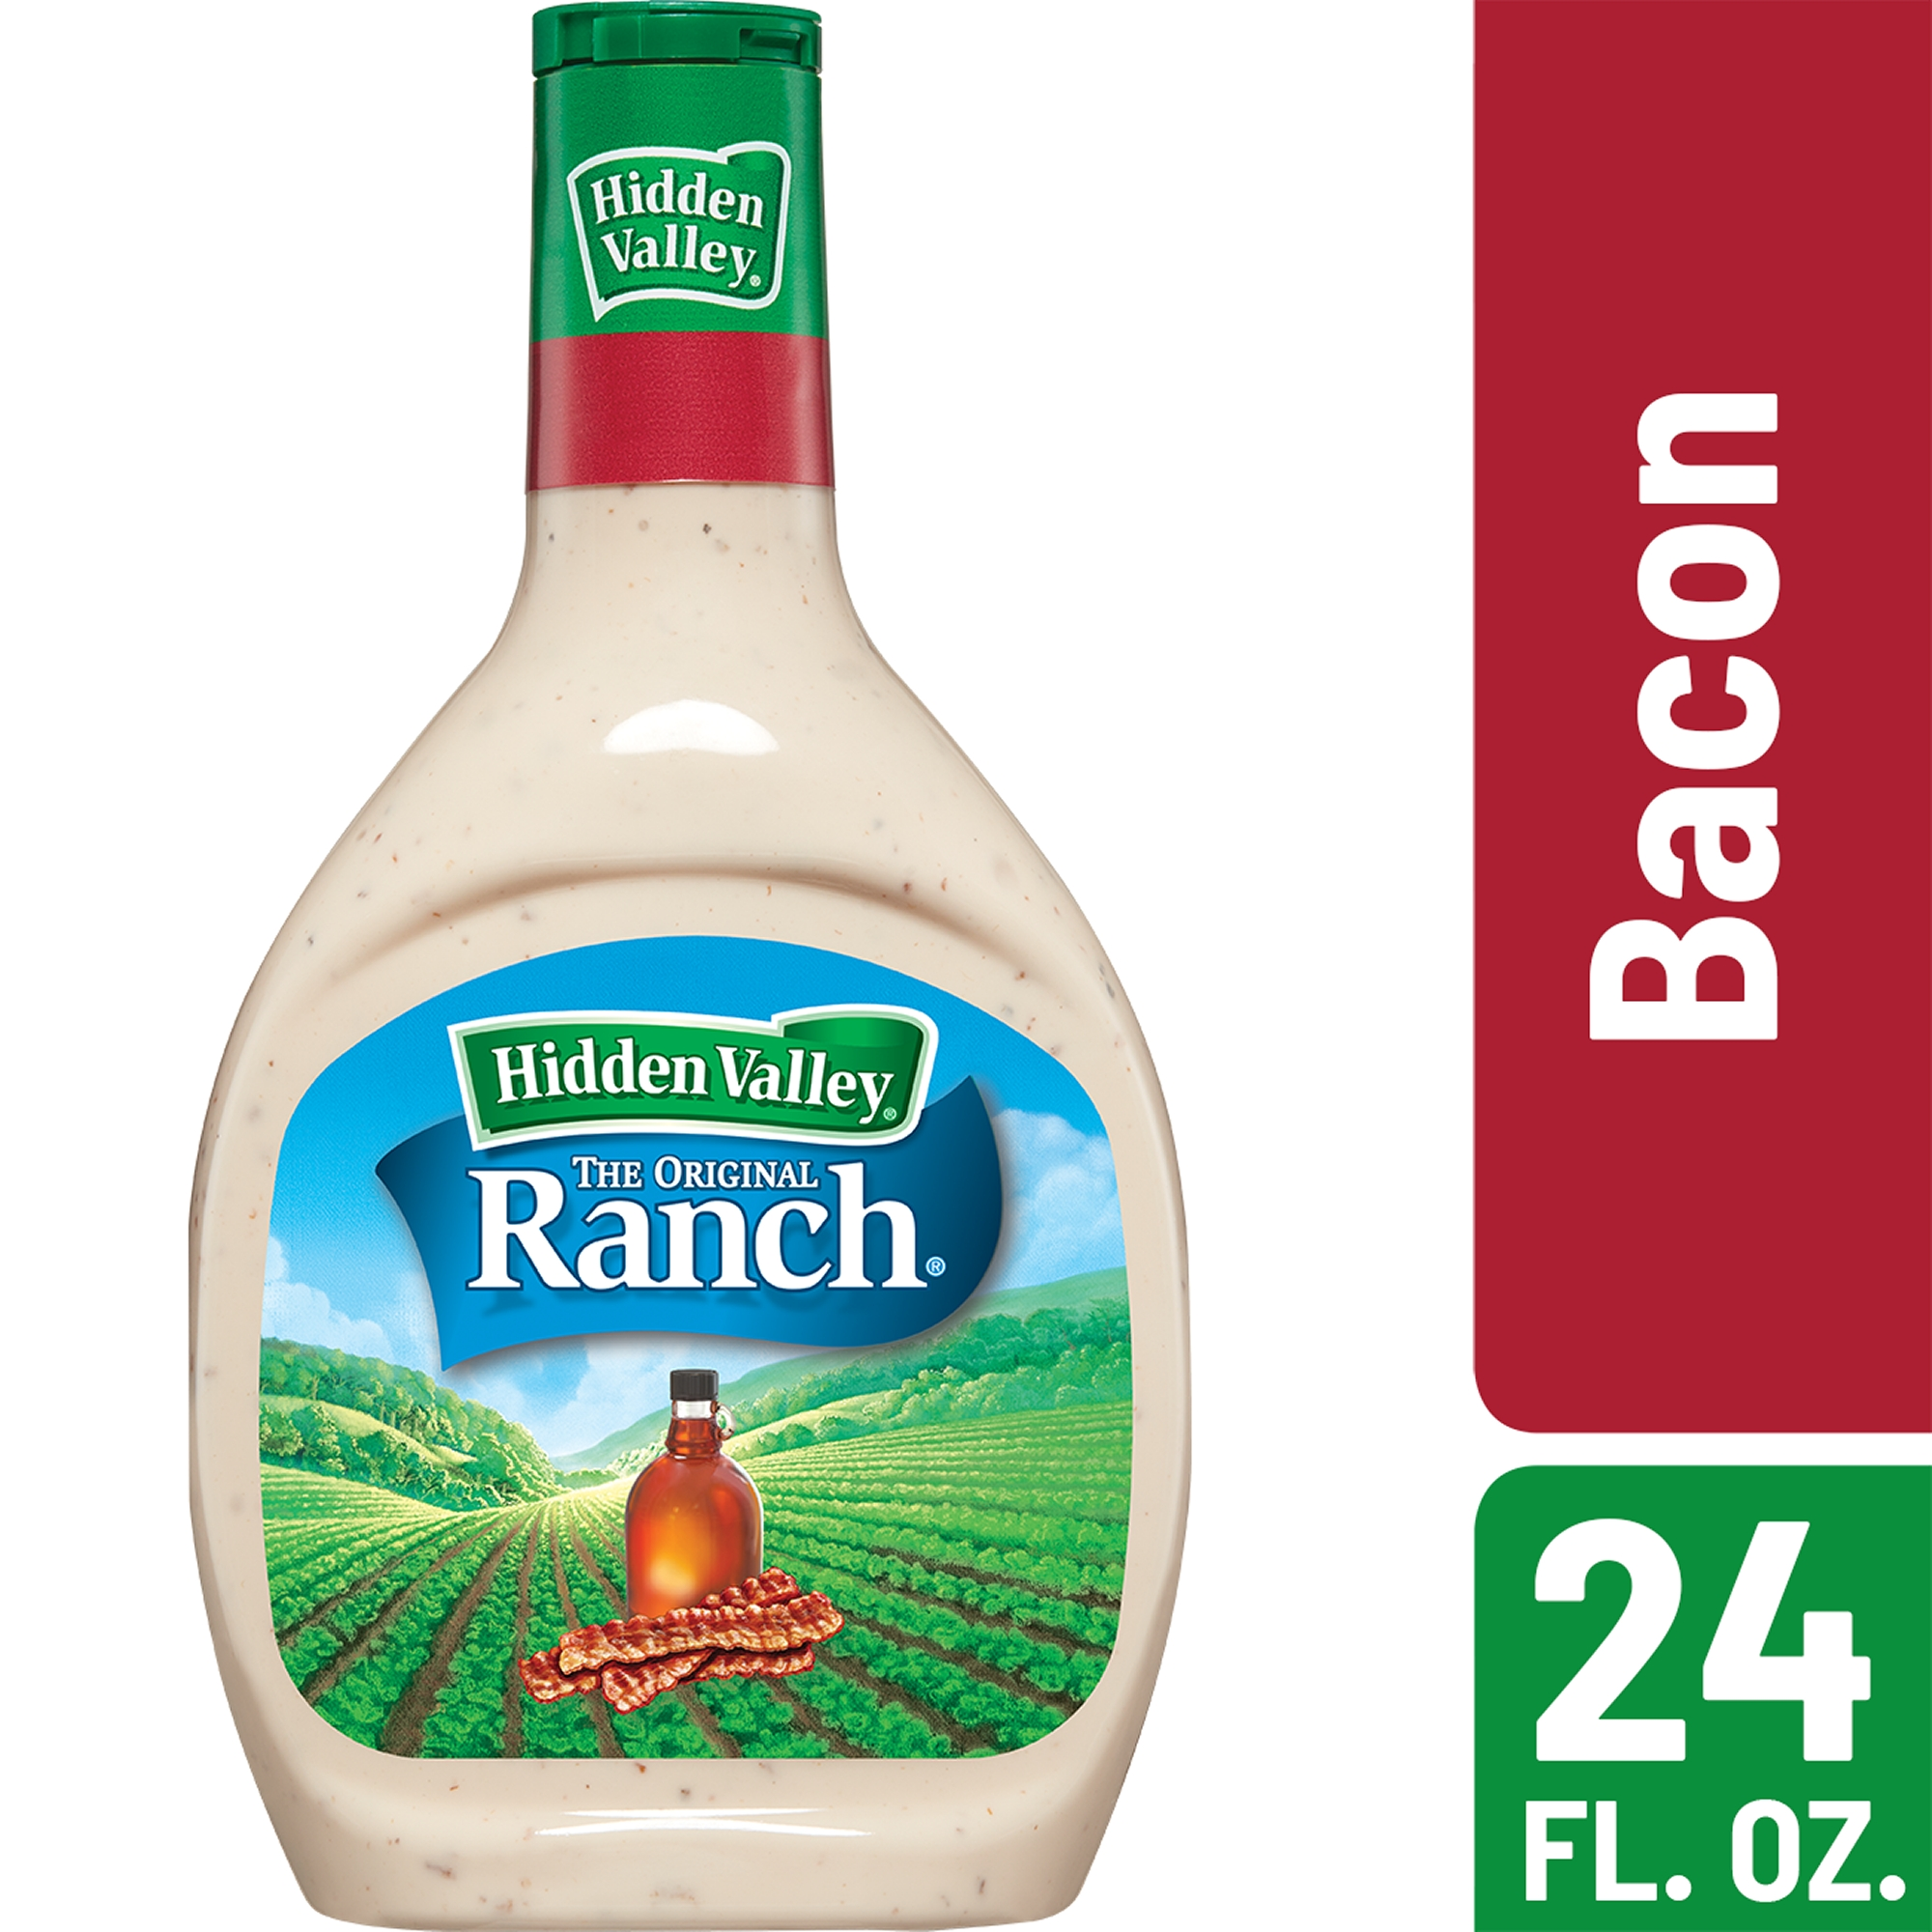 (2 Pack) Hidden Valley Bacon Ranch Salad Dressing & Topping, Gluten Free - 24 oz Bottle